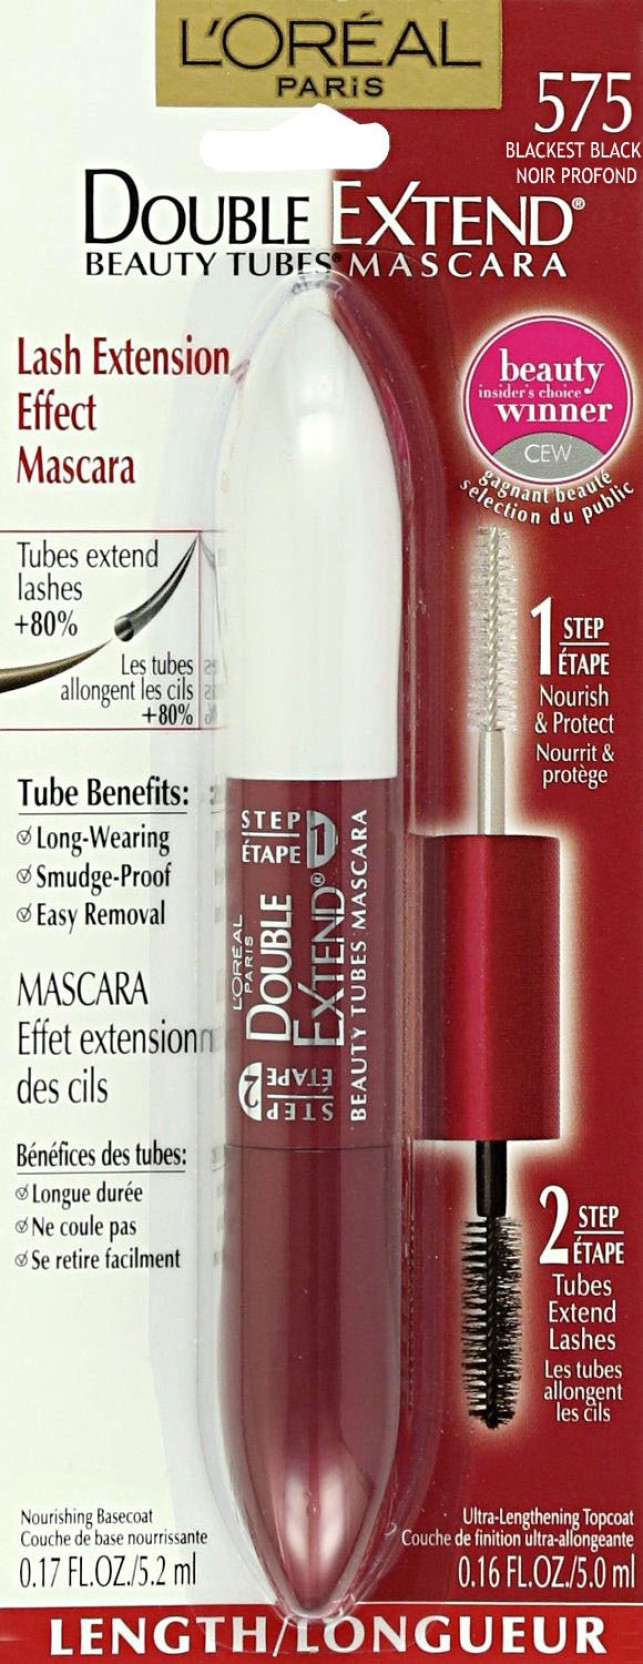 a72381aedf2 L'Oreal Paris Double Extend Beauty Tubes Mascara 10.2 ml - Price in ...